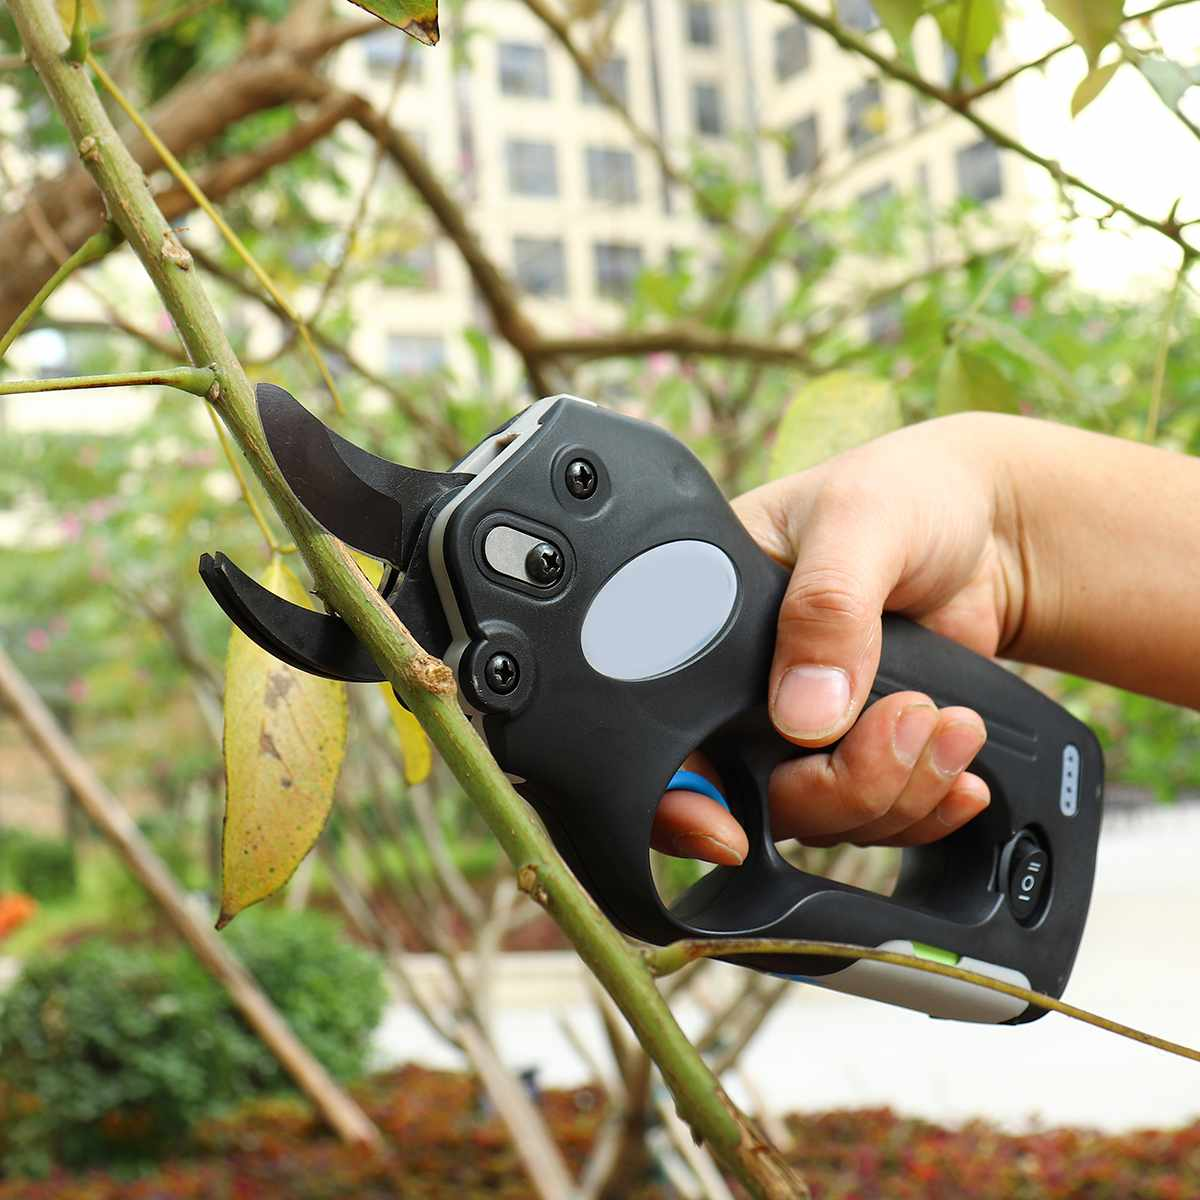 12V Wireless Electric Rechargeable Garden Scissors for Pruning Branches and stems with 4 Li-ion Battery 15